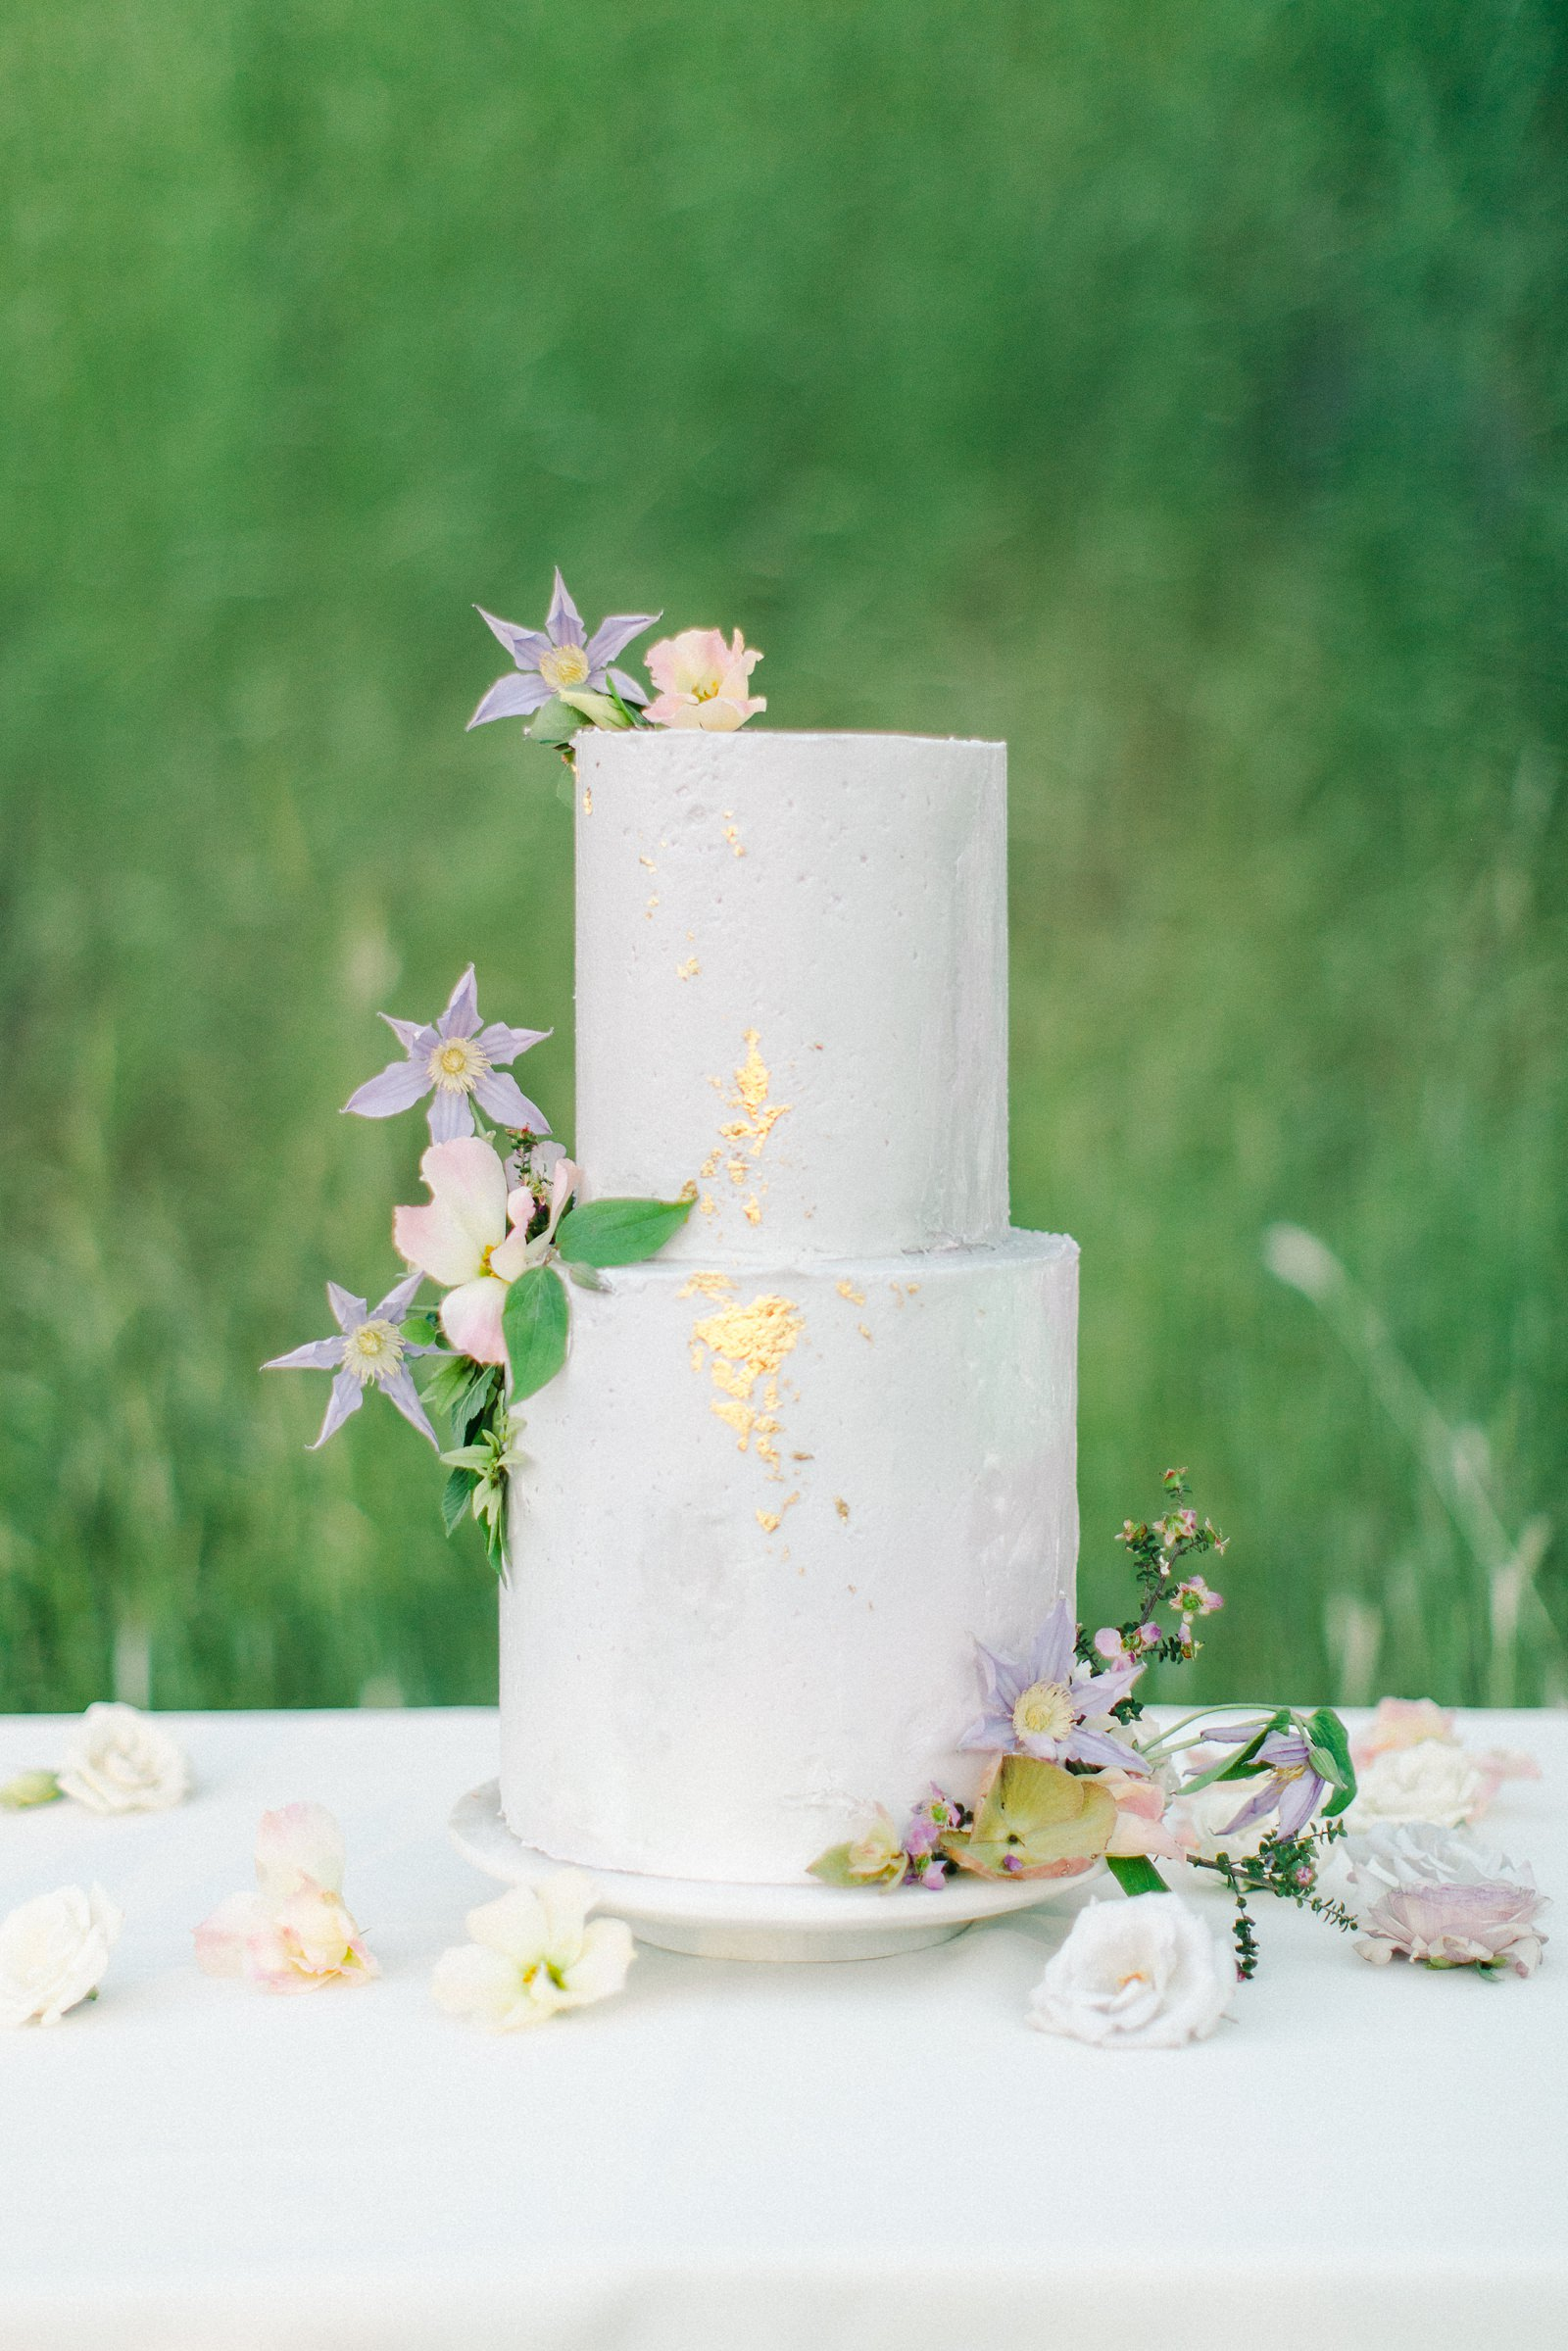 French pastel wedding , white and lavender two tier buttercream wedding cake with edible gold leaf and purple flowers, fine art film wedding photography